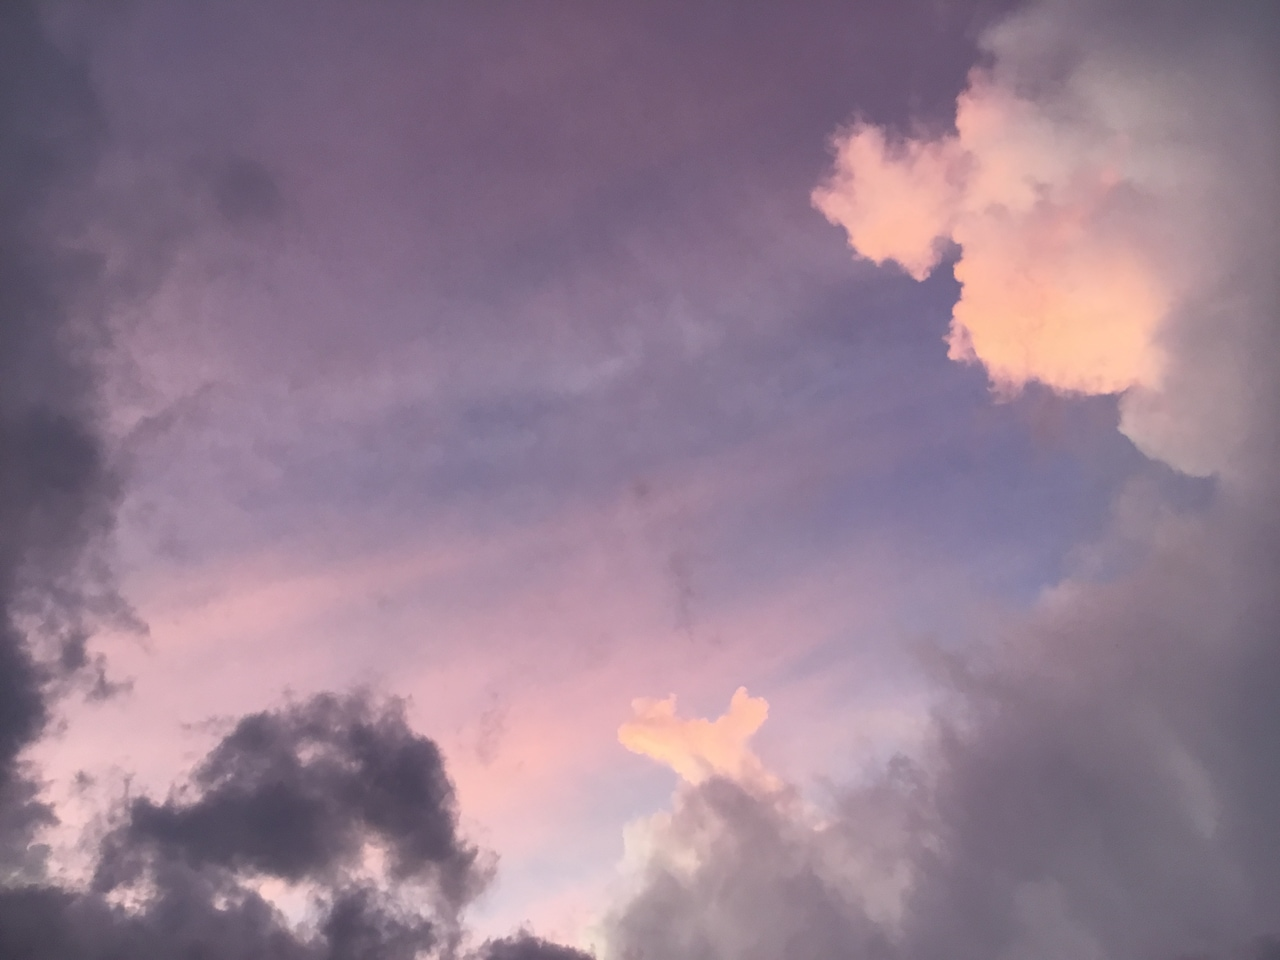 cloudy sunset shared by 𝒗𝒂𝒍𝒆𝒏𝒕𝒊𝒏𝒂 on we heart it cloudy sunset shared by 𝒗𝒂𝒍𝒆𝒏𝒕𝒊𝒏𝒂 on we